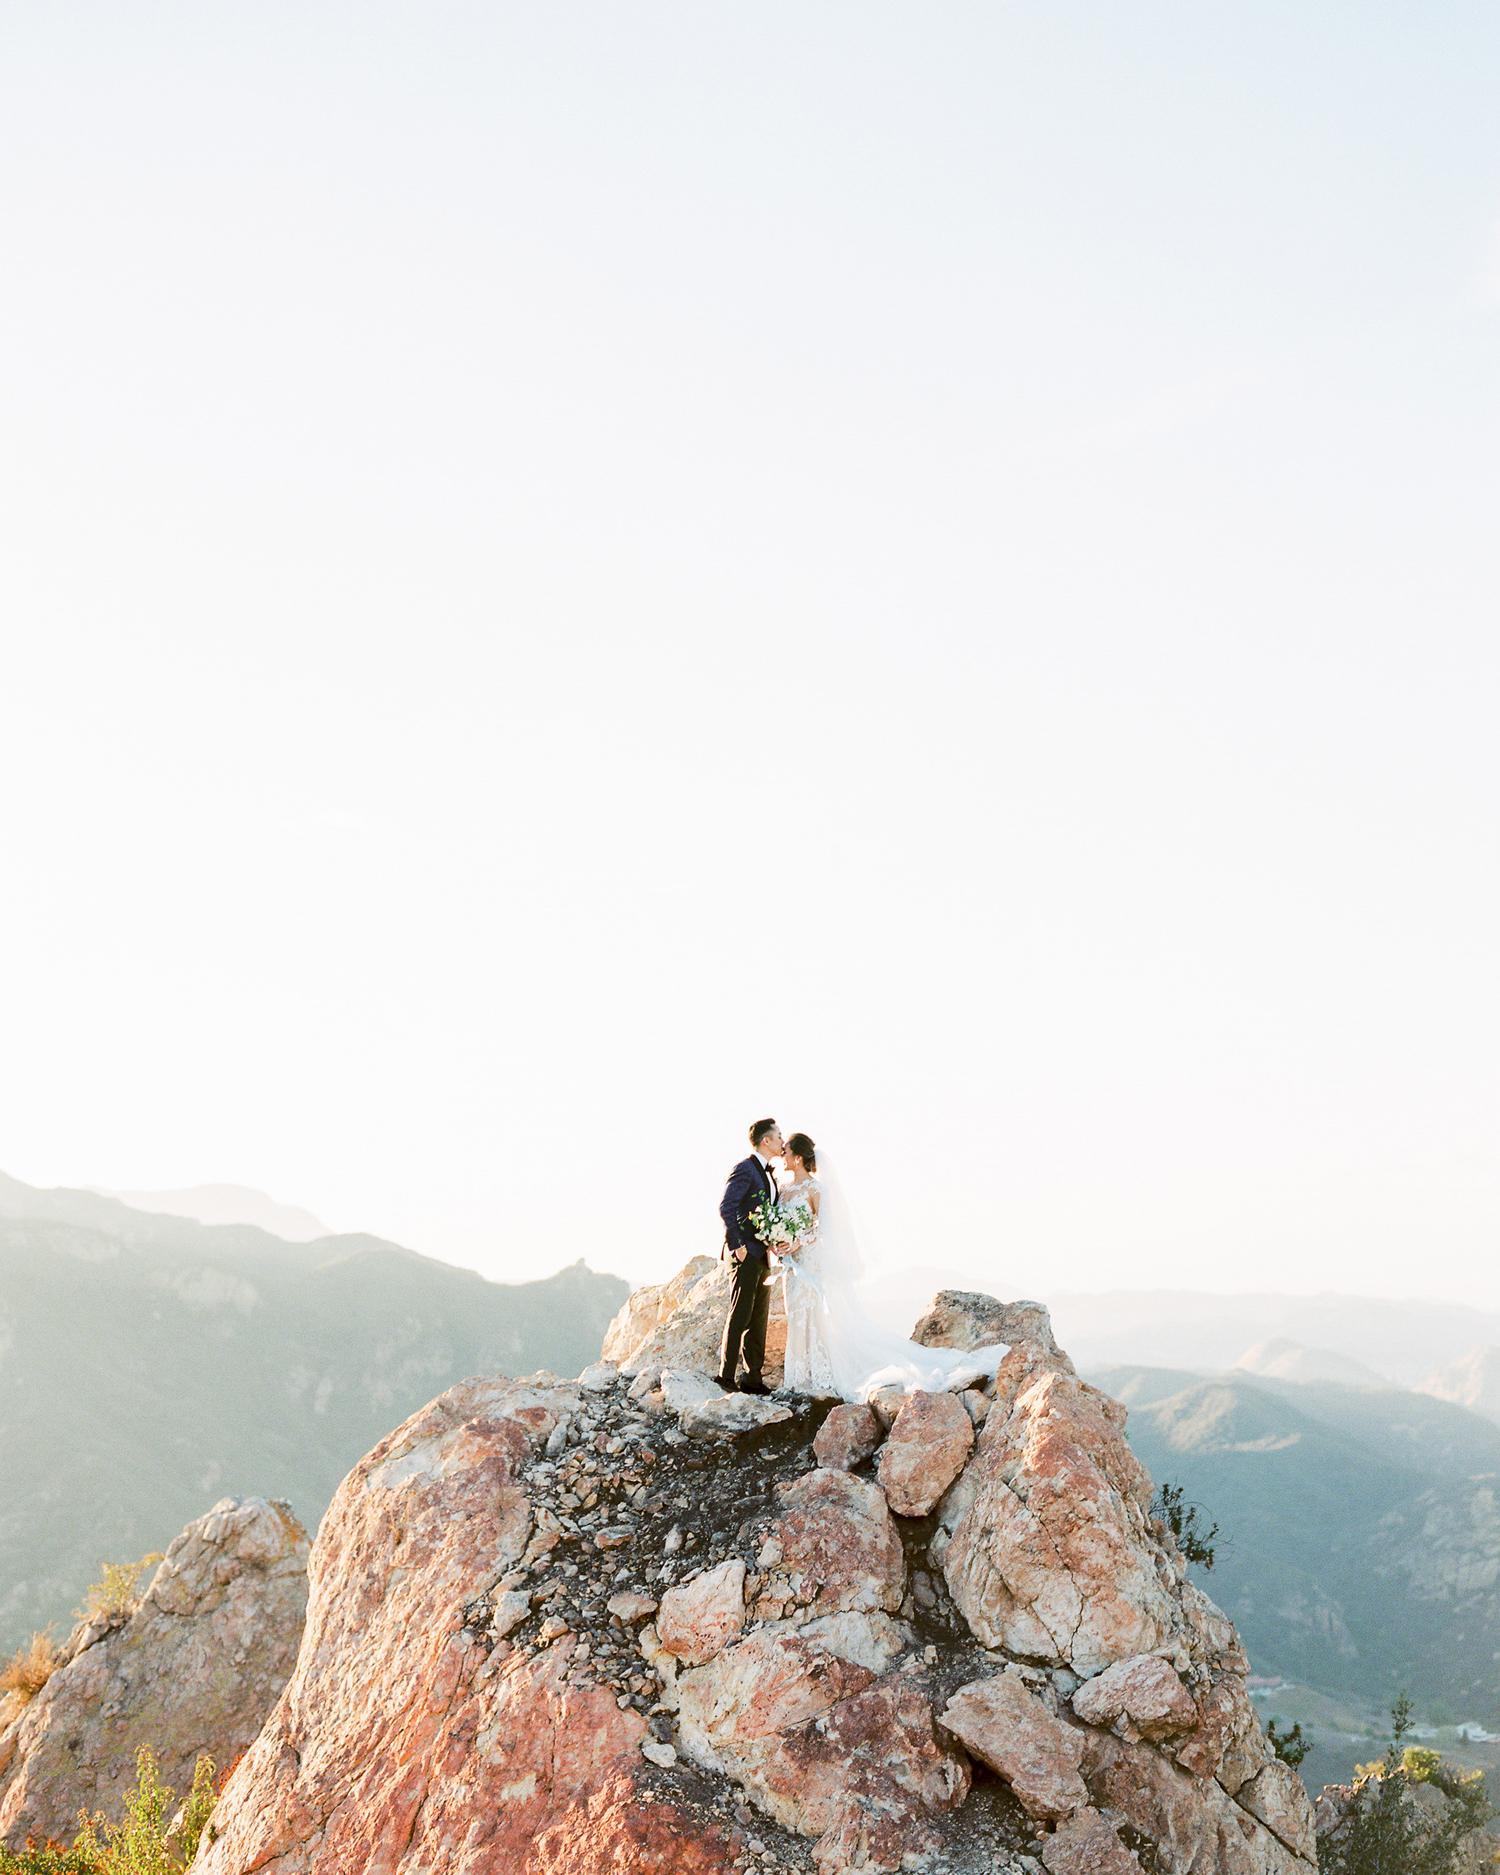 sunset wedding photos groom kissing bride on cliff with mountainous background